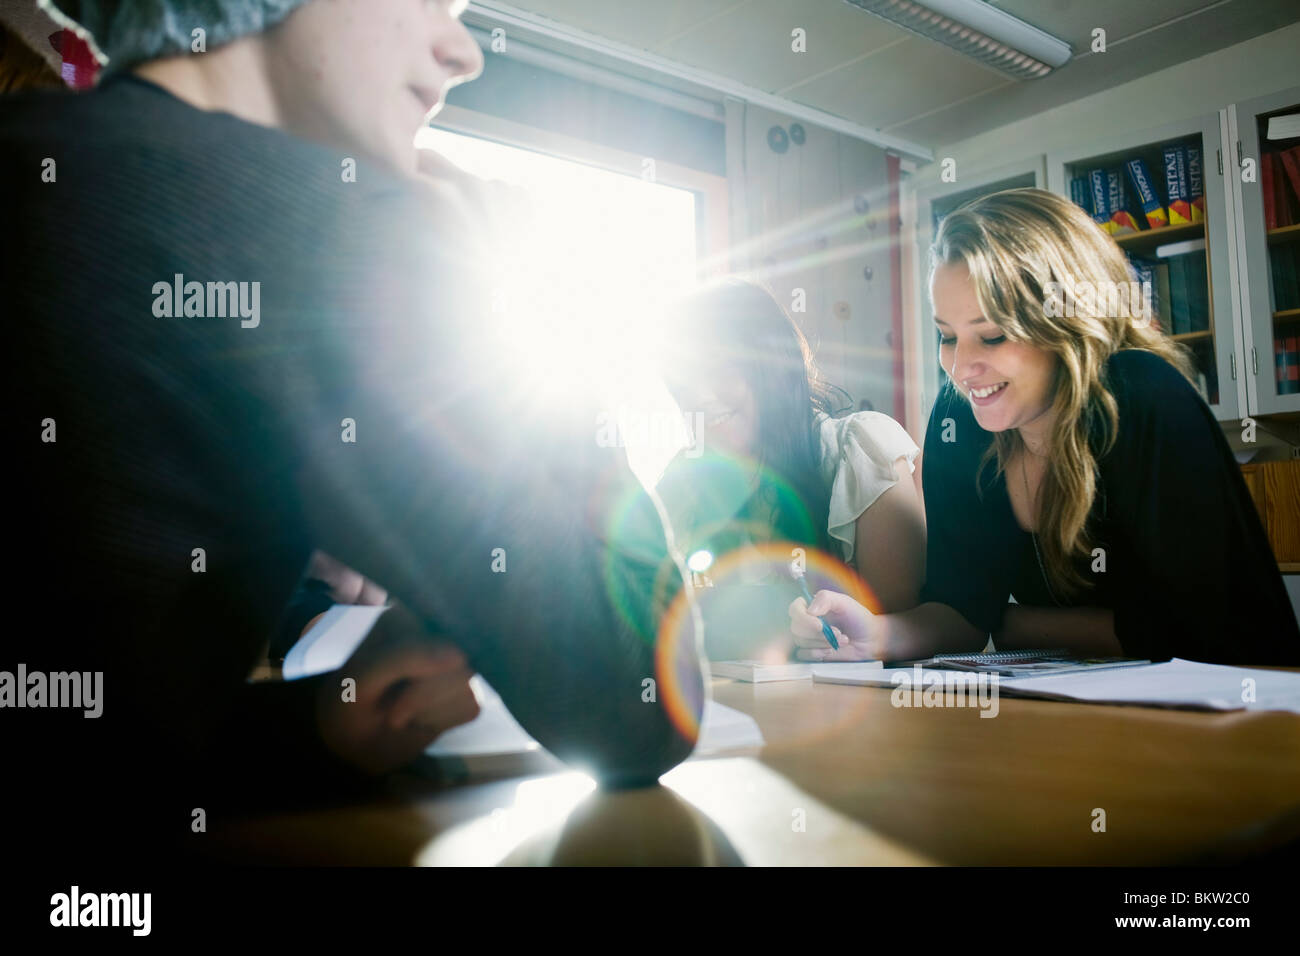 Teamwork in the light - Stock Image